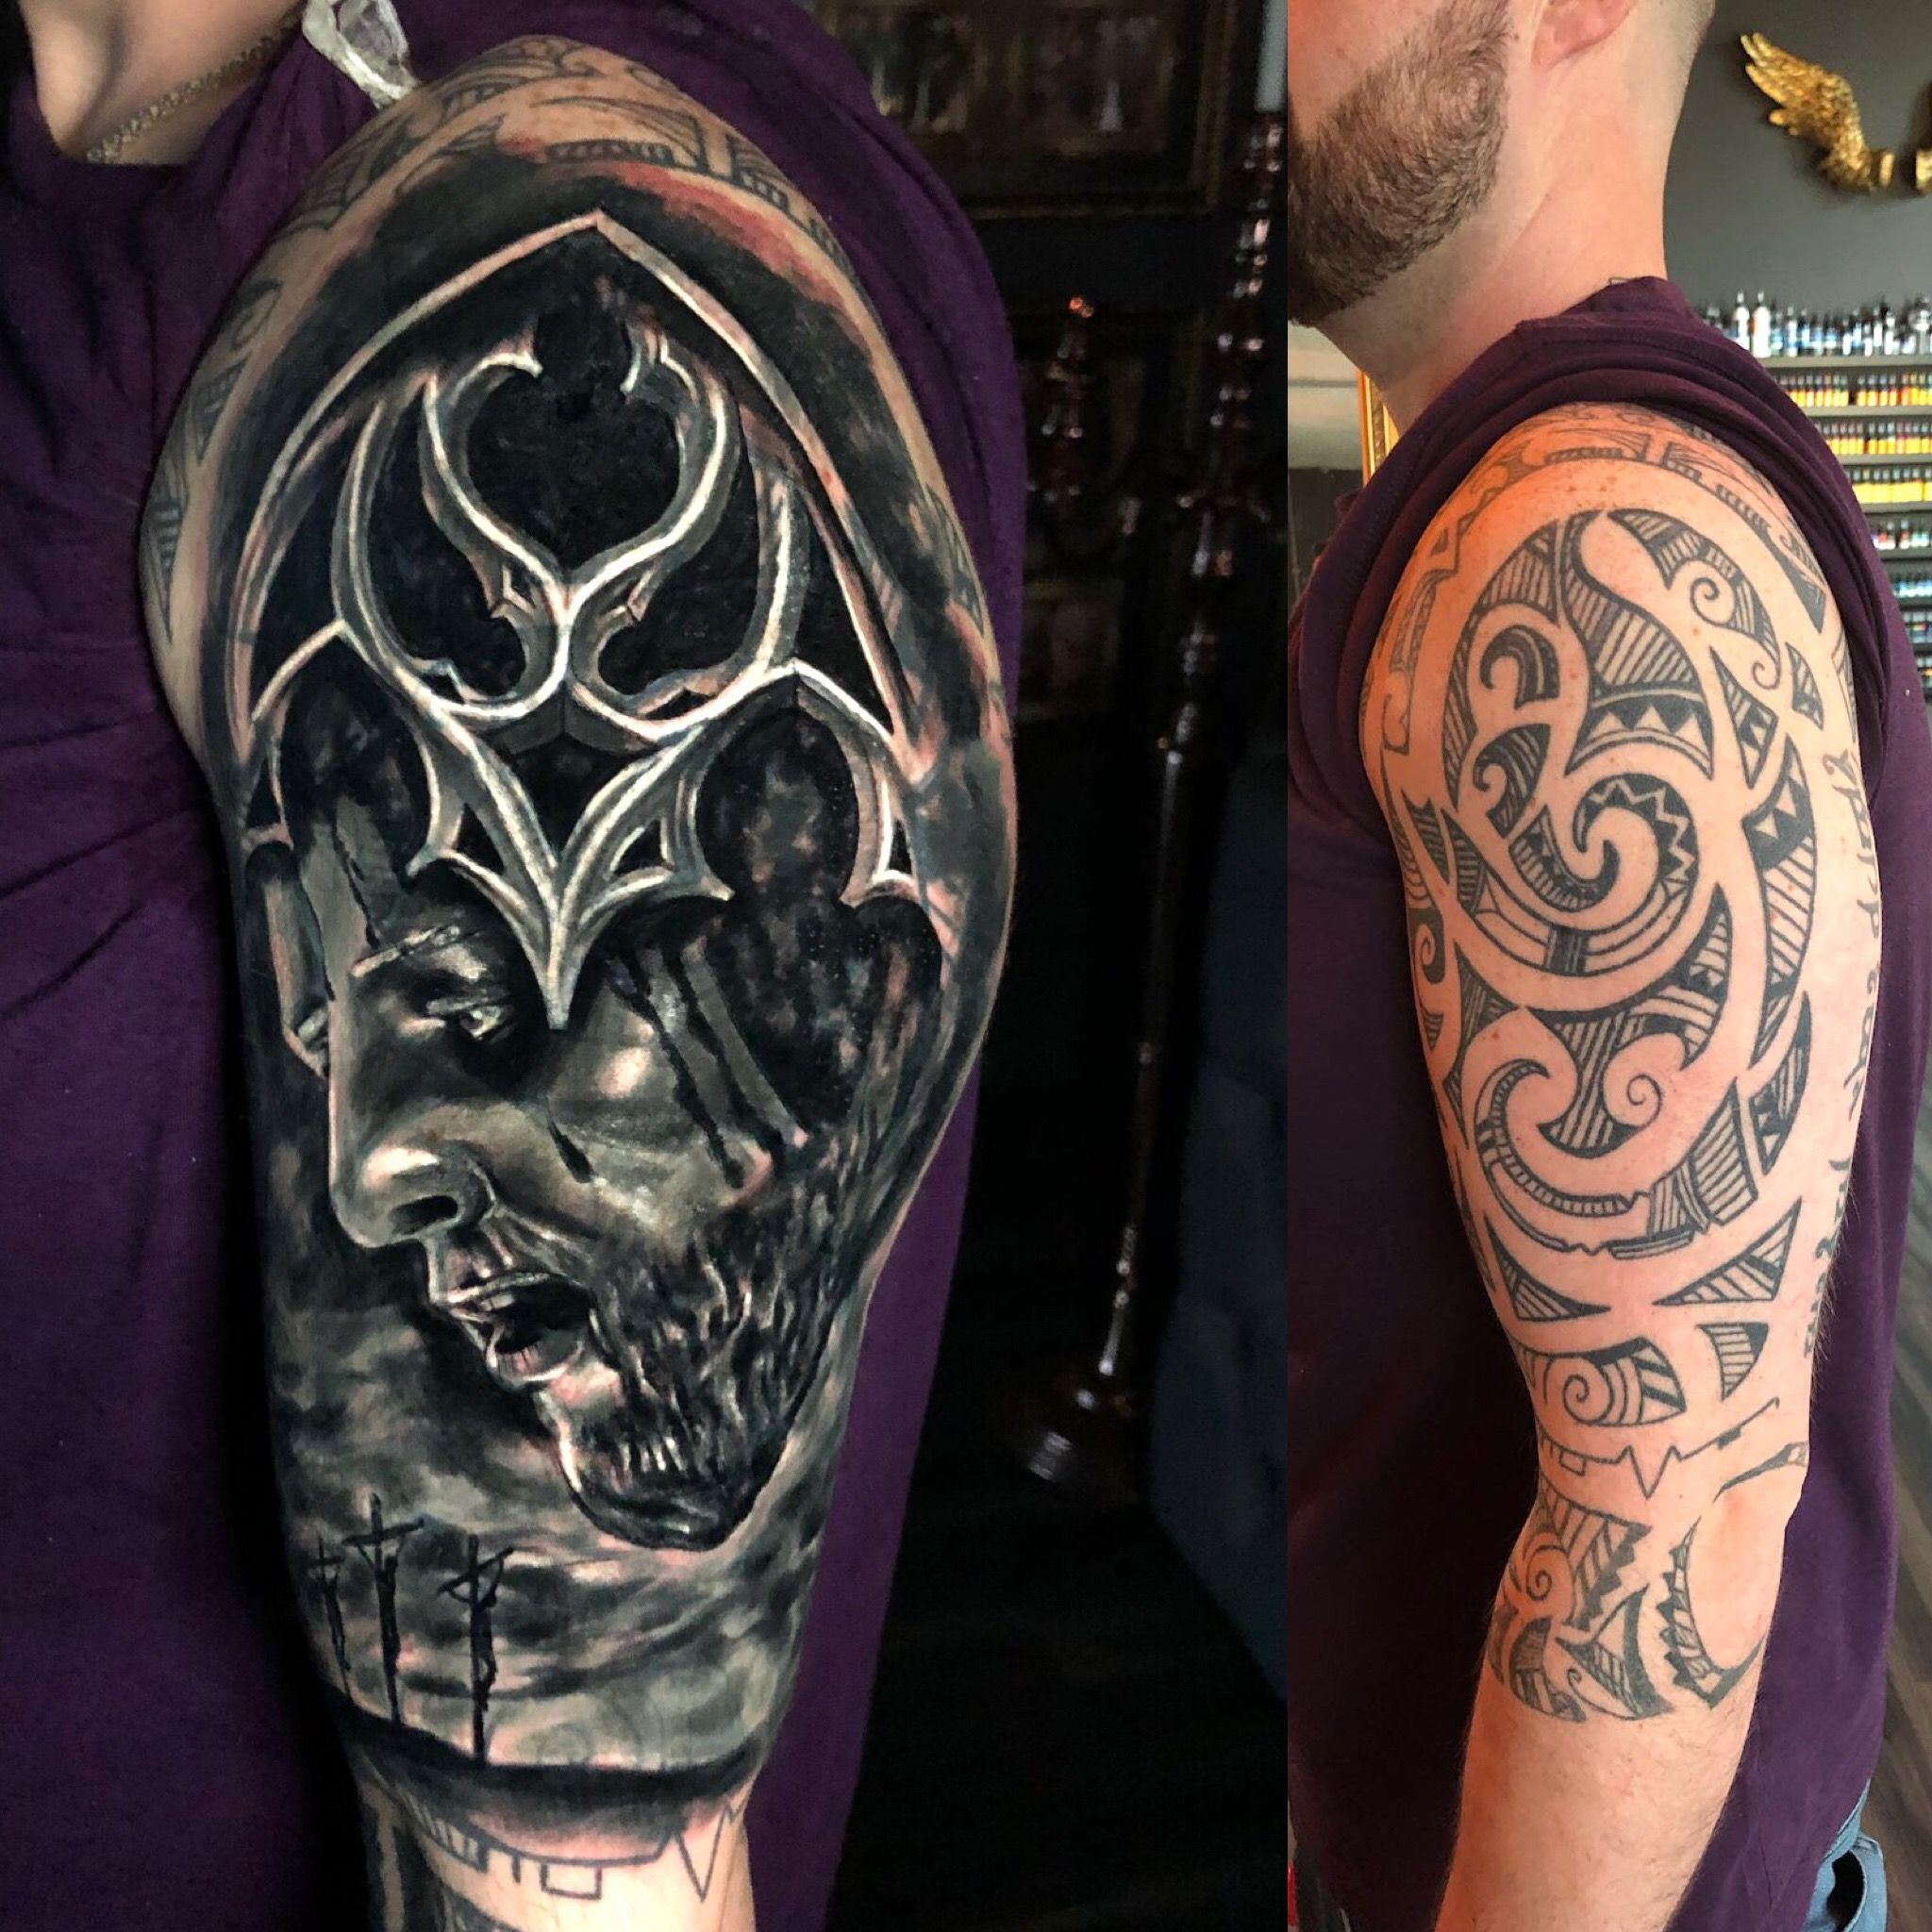 Cover up tattoo by seb limited availability at redemption